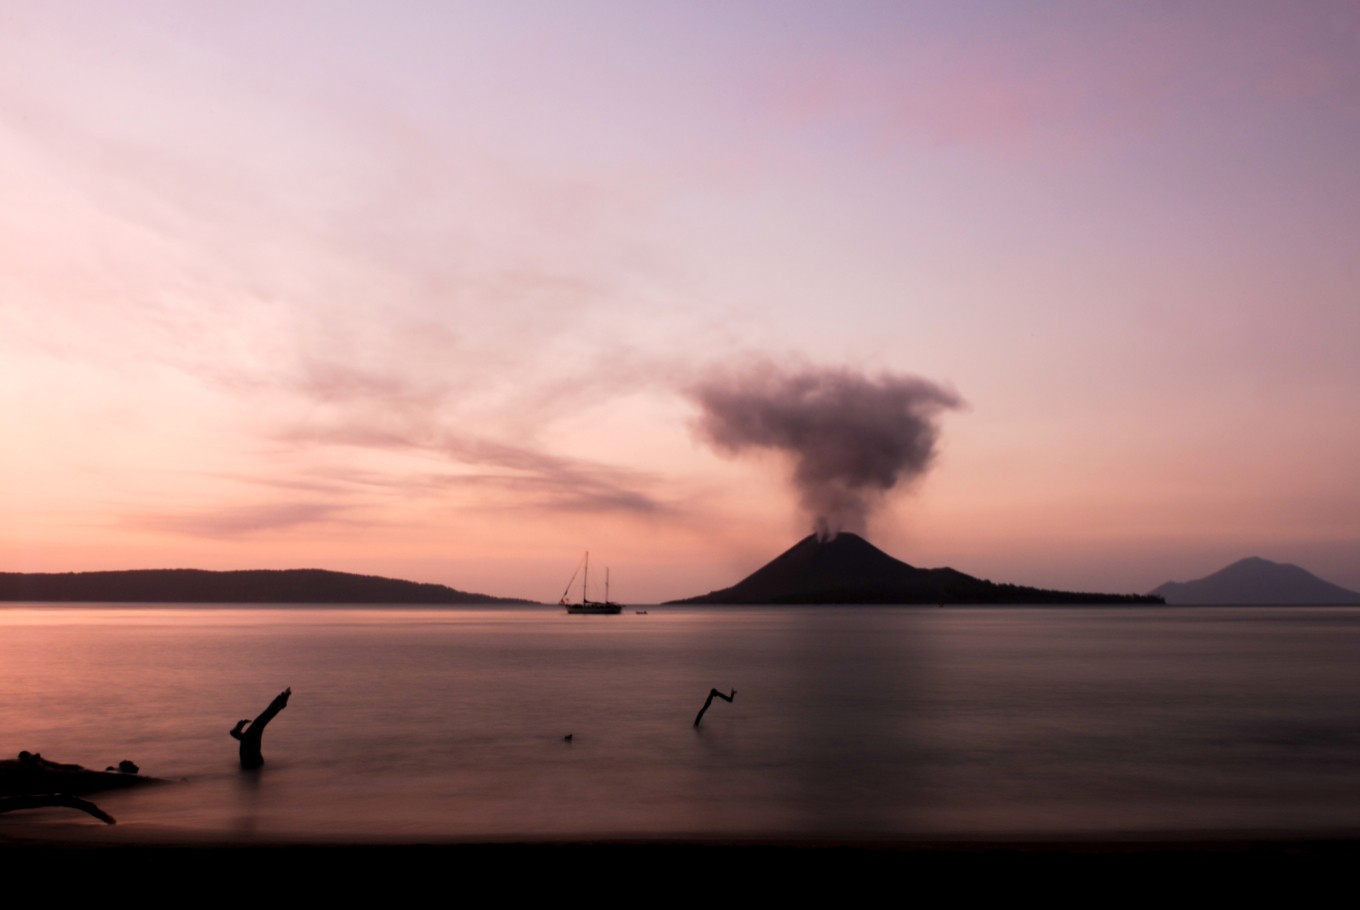 Level 2 alert status still in place for Mount Anak Krakatau